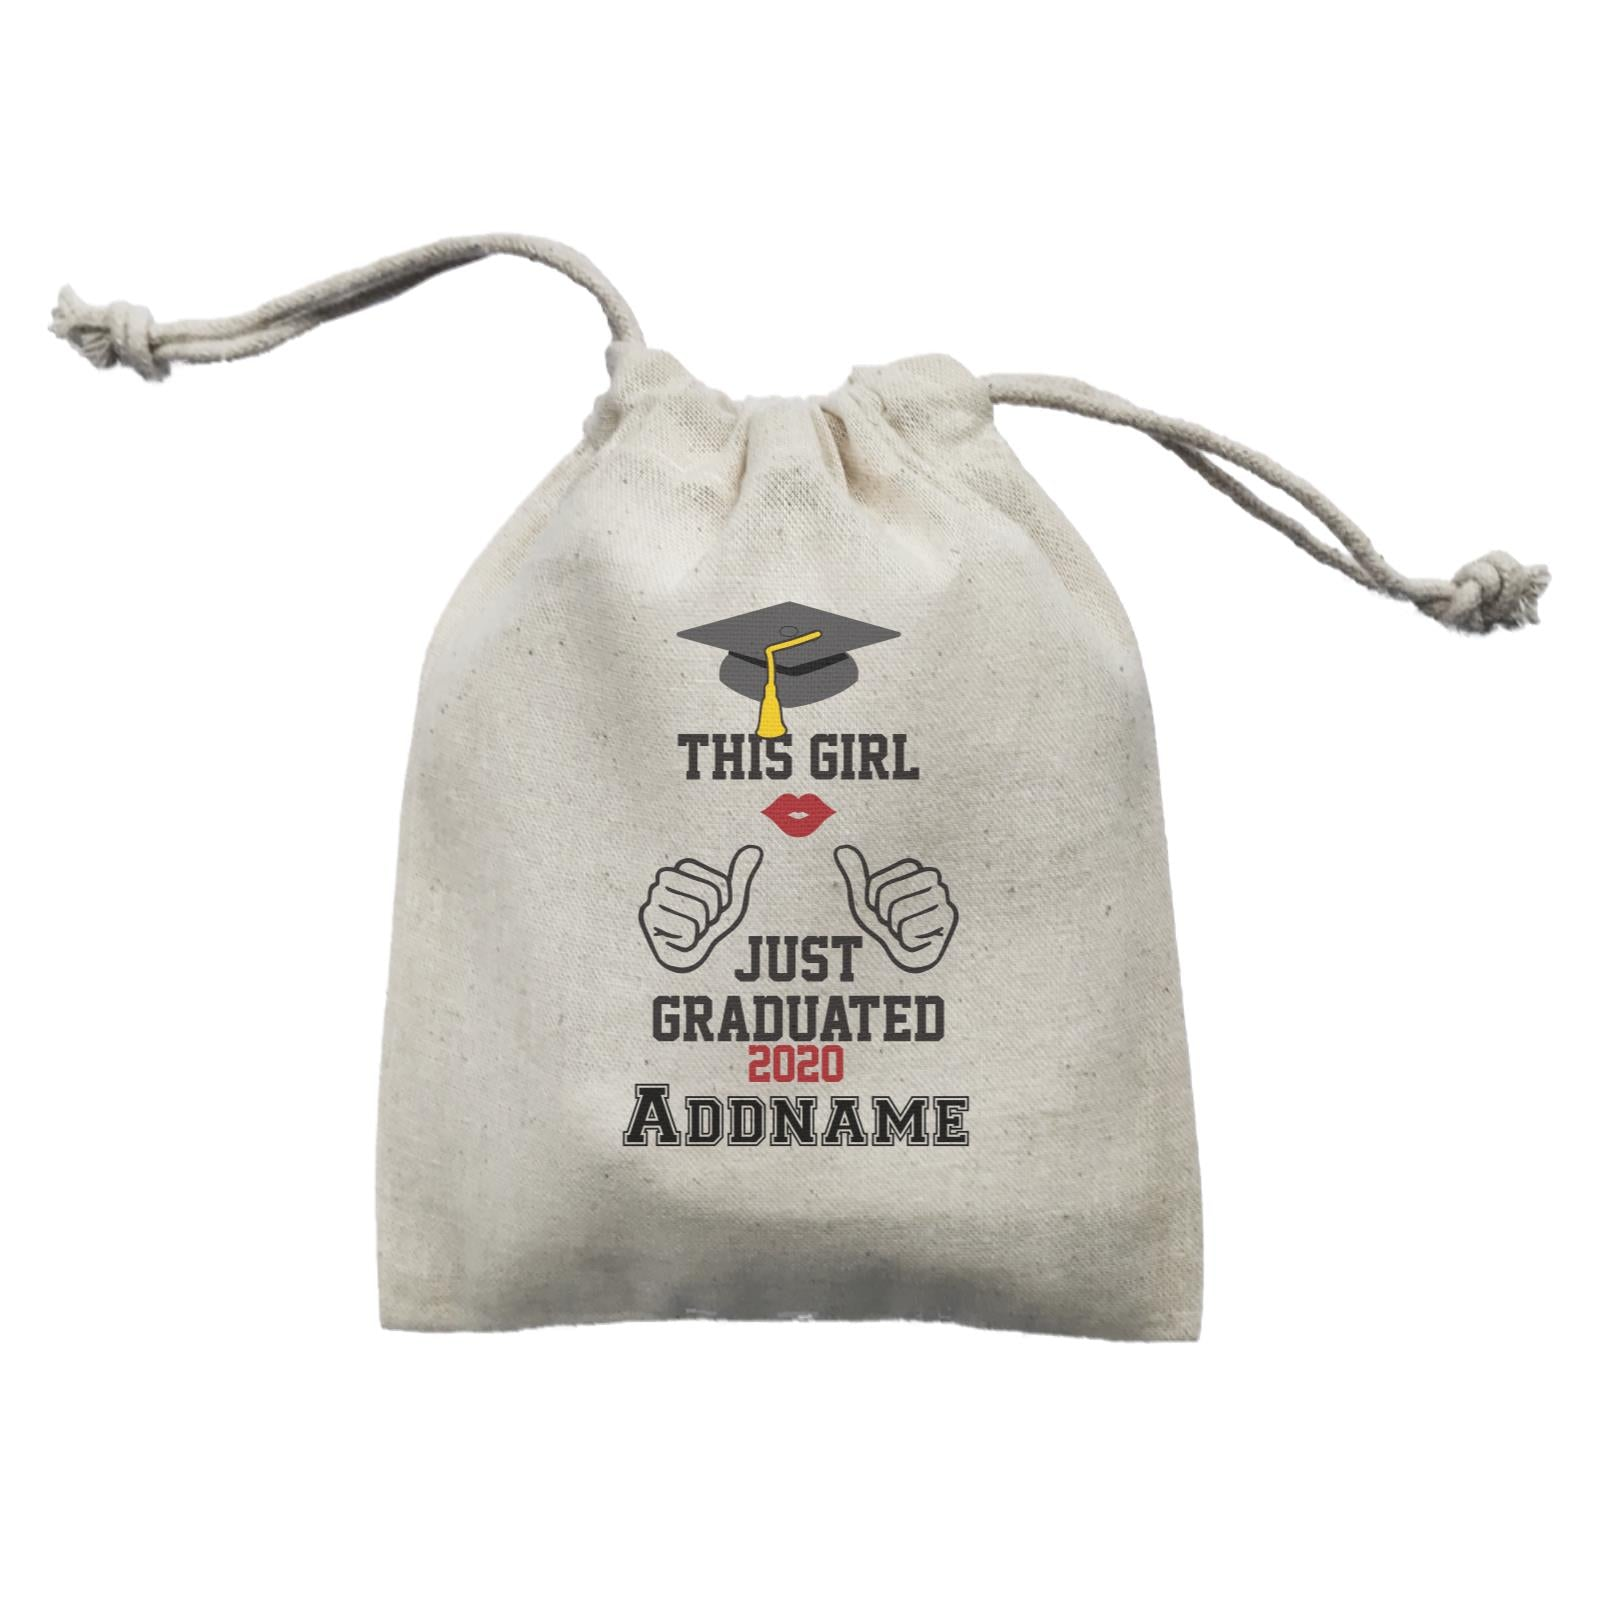 Graduation Series This Girl Just Graduated Mini Accessories Mini Pouch